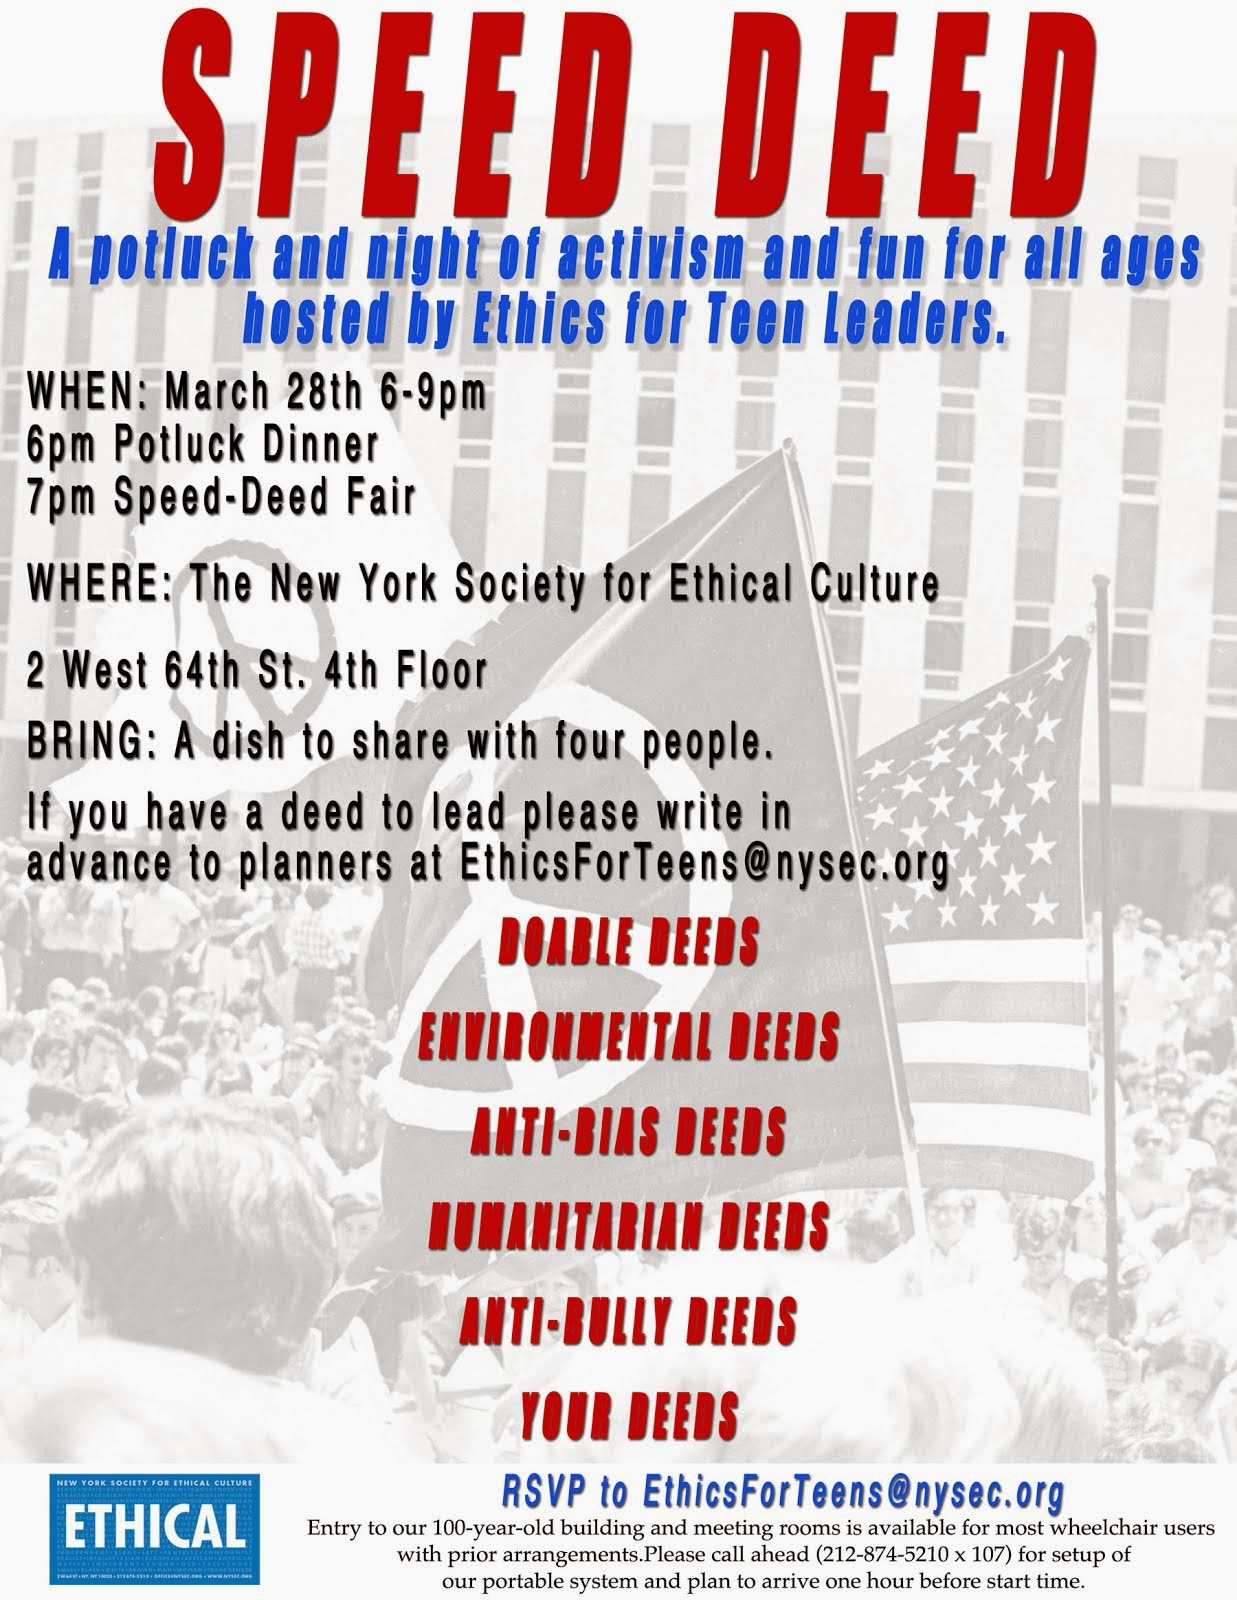 Inaugural Poster for Speed Deed, NYSEC, March 2014